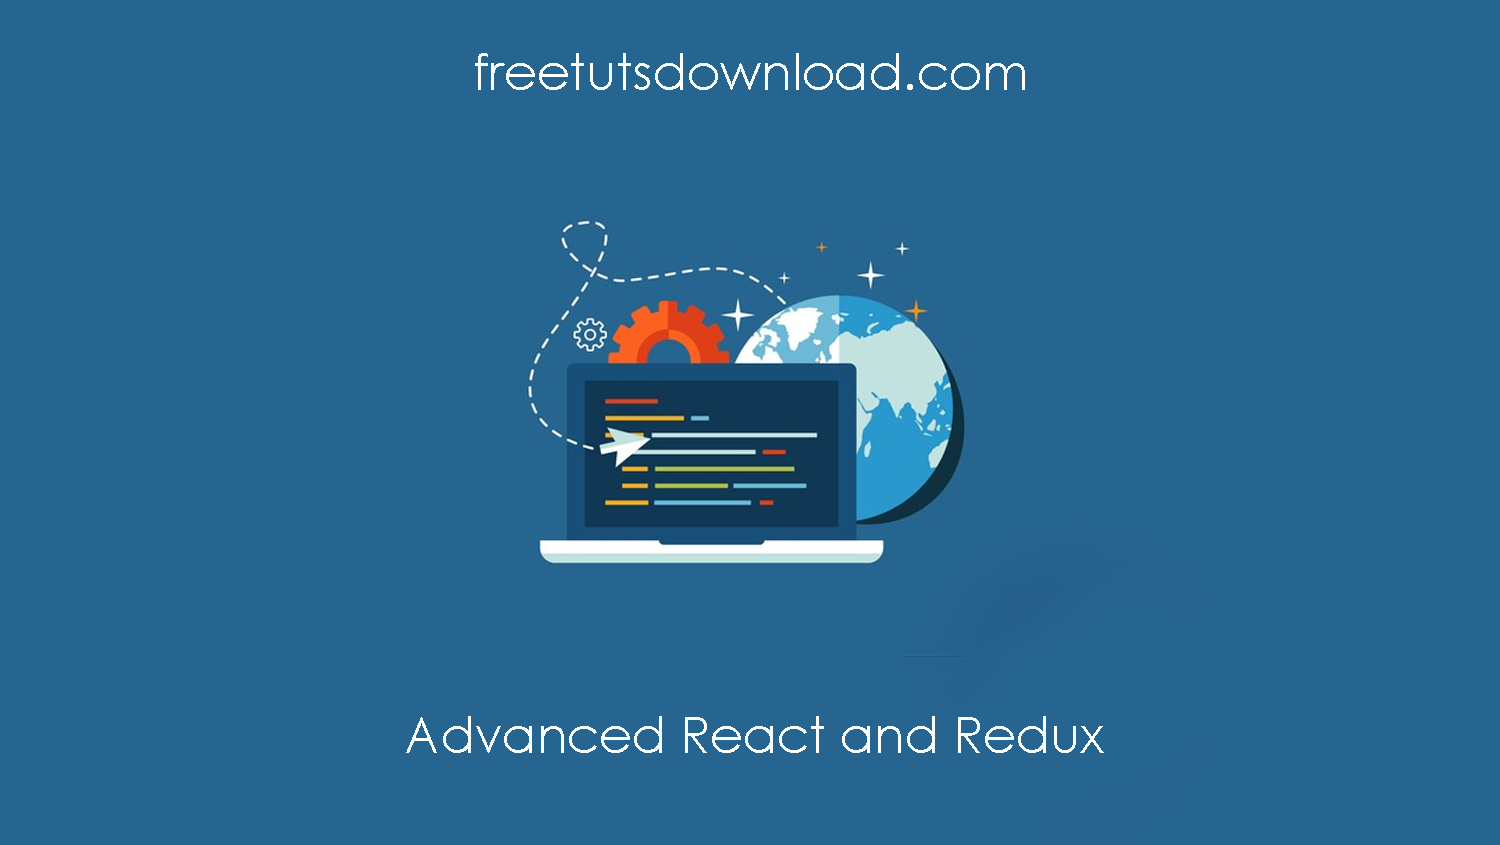 Advanced React and Redux Free Download